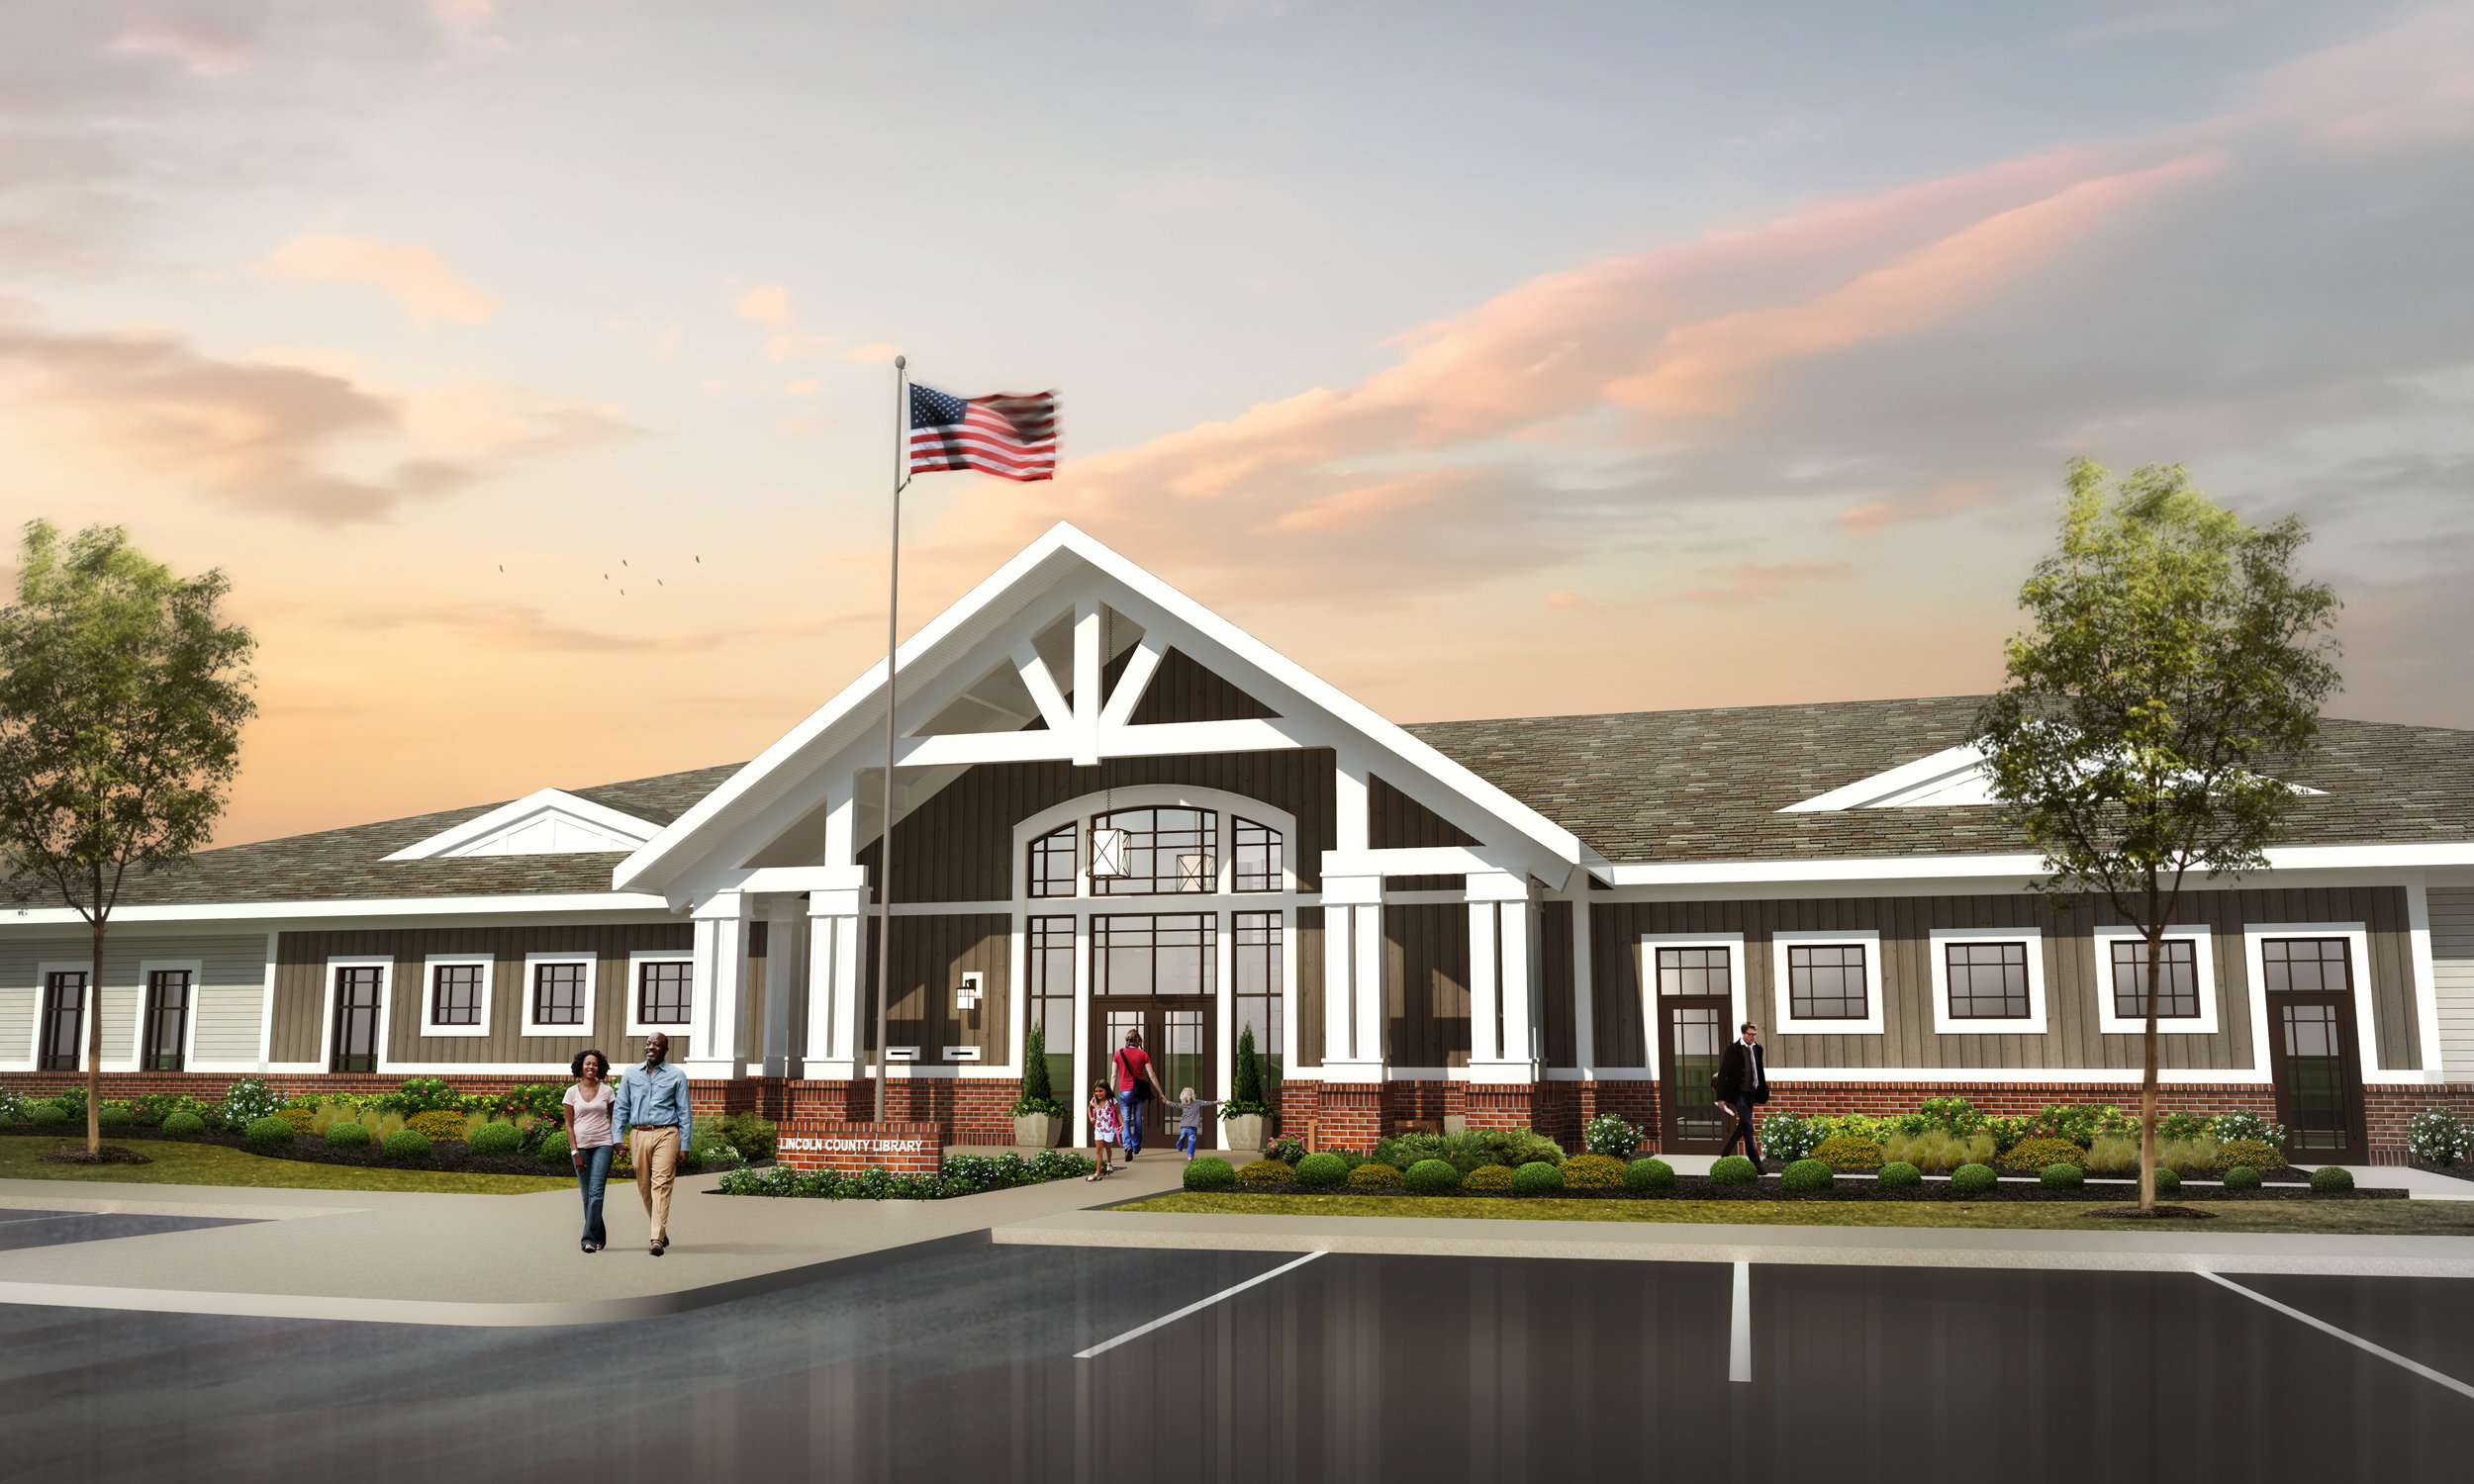 ADW-Civic-West Lincoln Library-NC-Entrance-Rendering.jpg